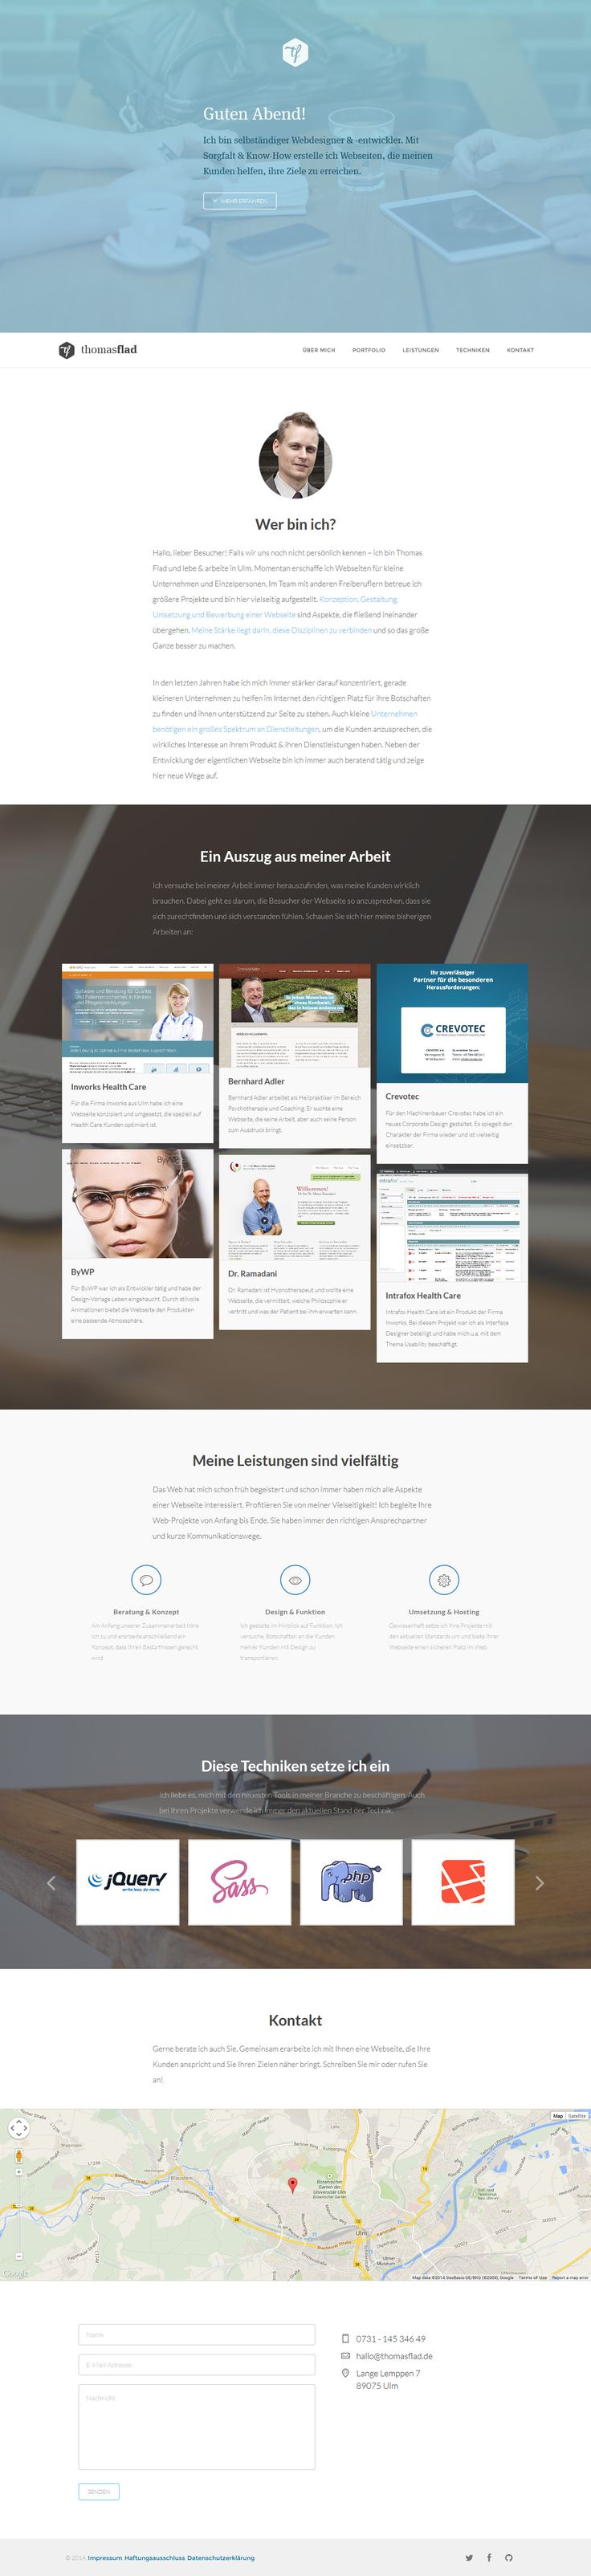 I love the shade of blue chosen for the accent colors on Thomas Flad. The transparency works well with the large image that's noticeable just enough. The fixed navigation gets started once you scroll down and has a clean, crisp appearance.  #flat #flatdesign #design #website